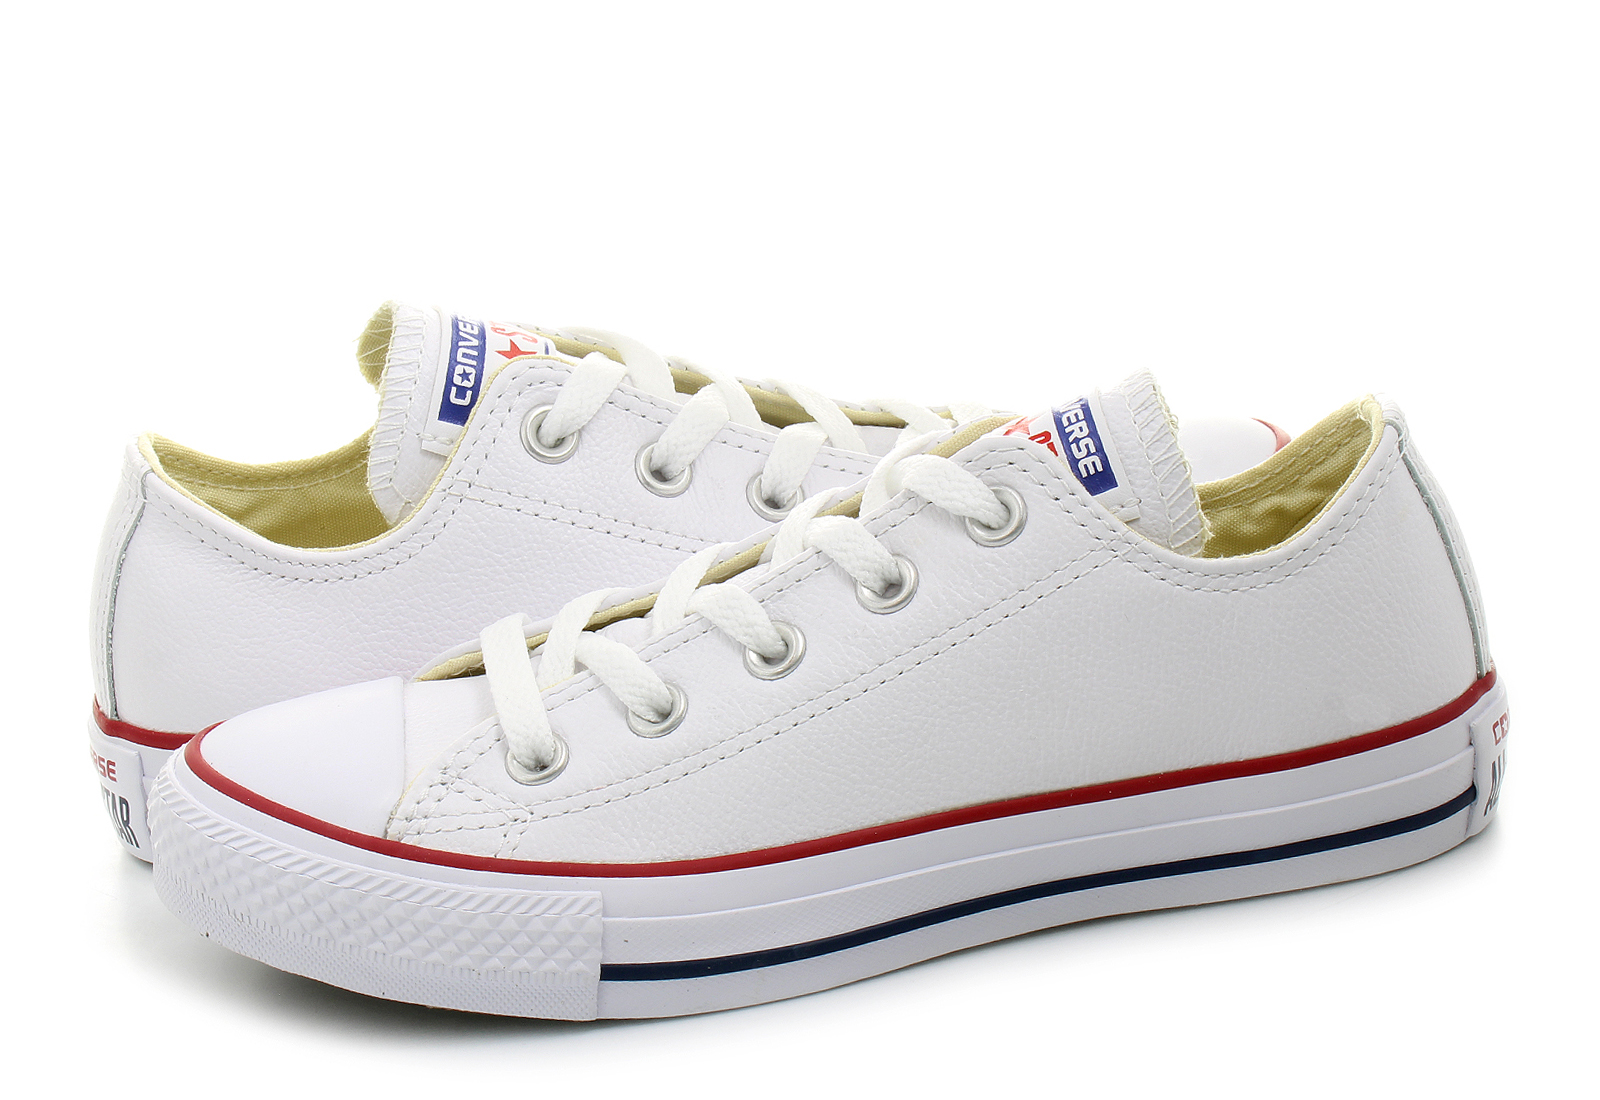 66d8ef5646 Converse Tornacipő - Ct As Core Leather Ox - 132173C - Office Shoes ...